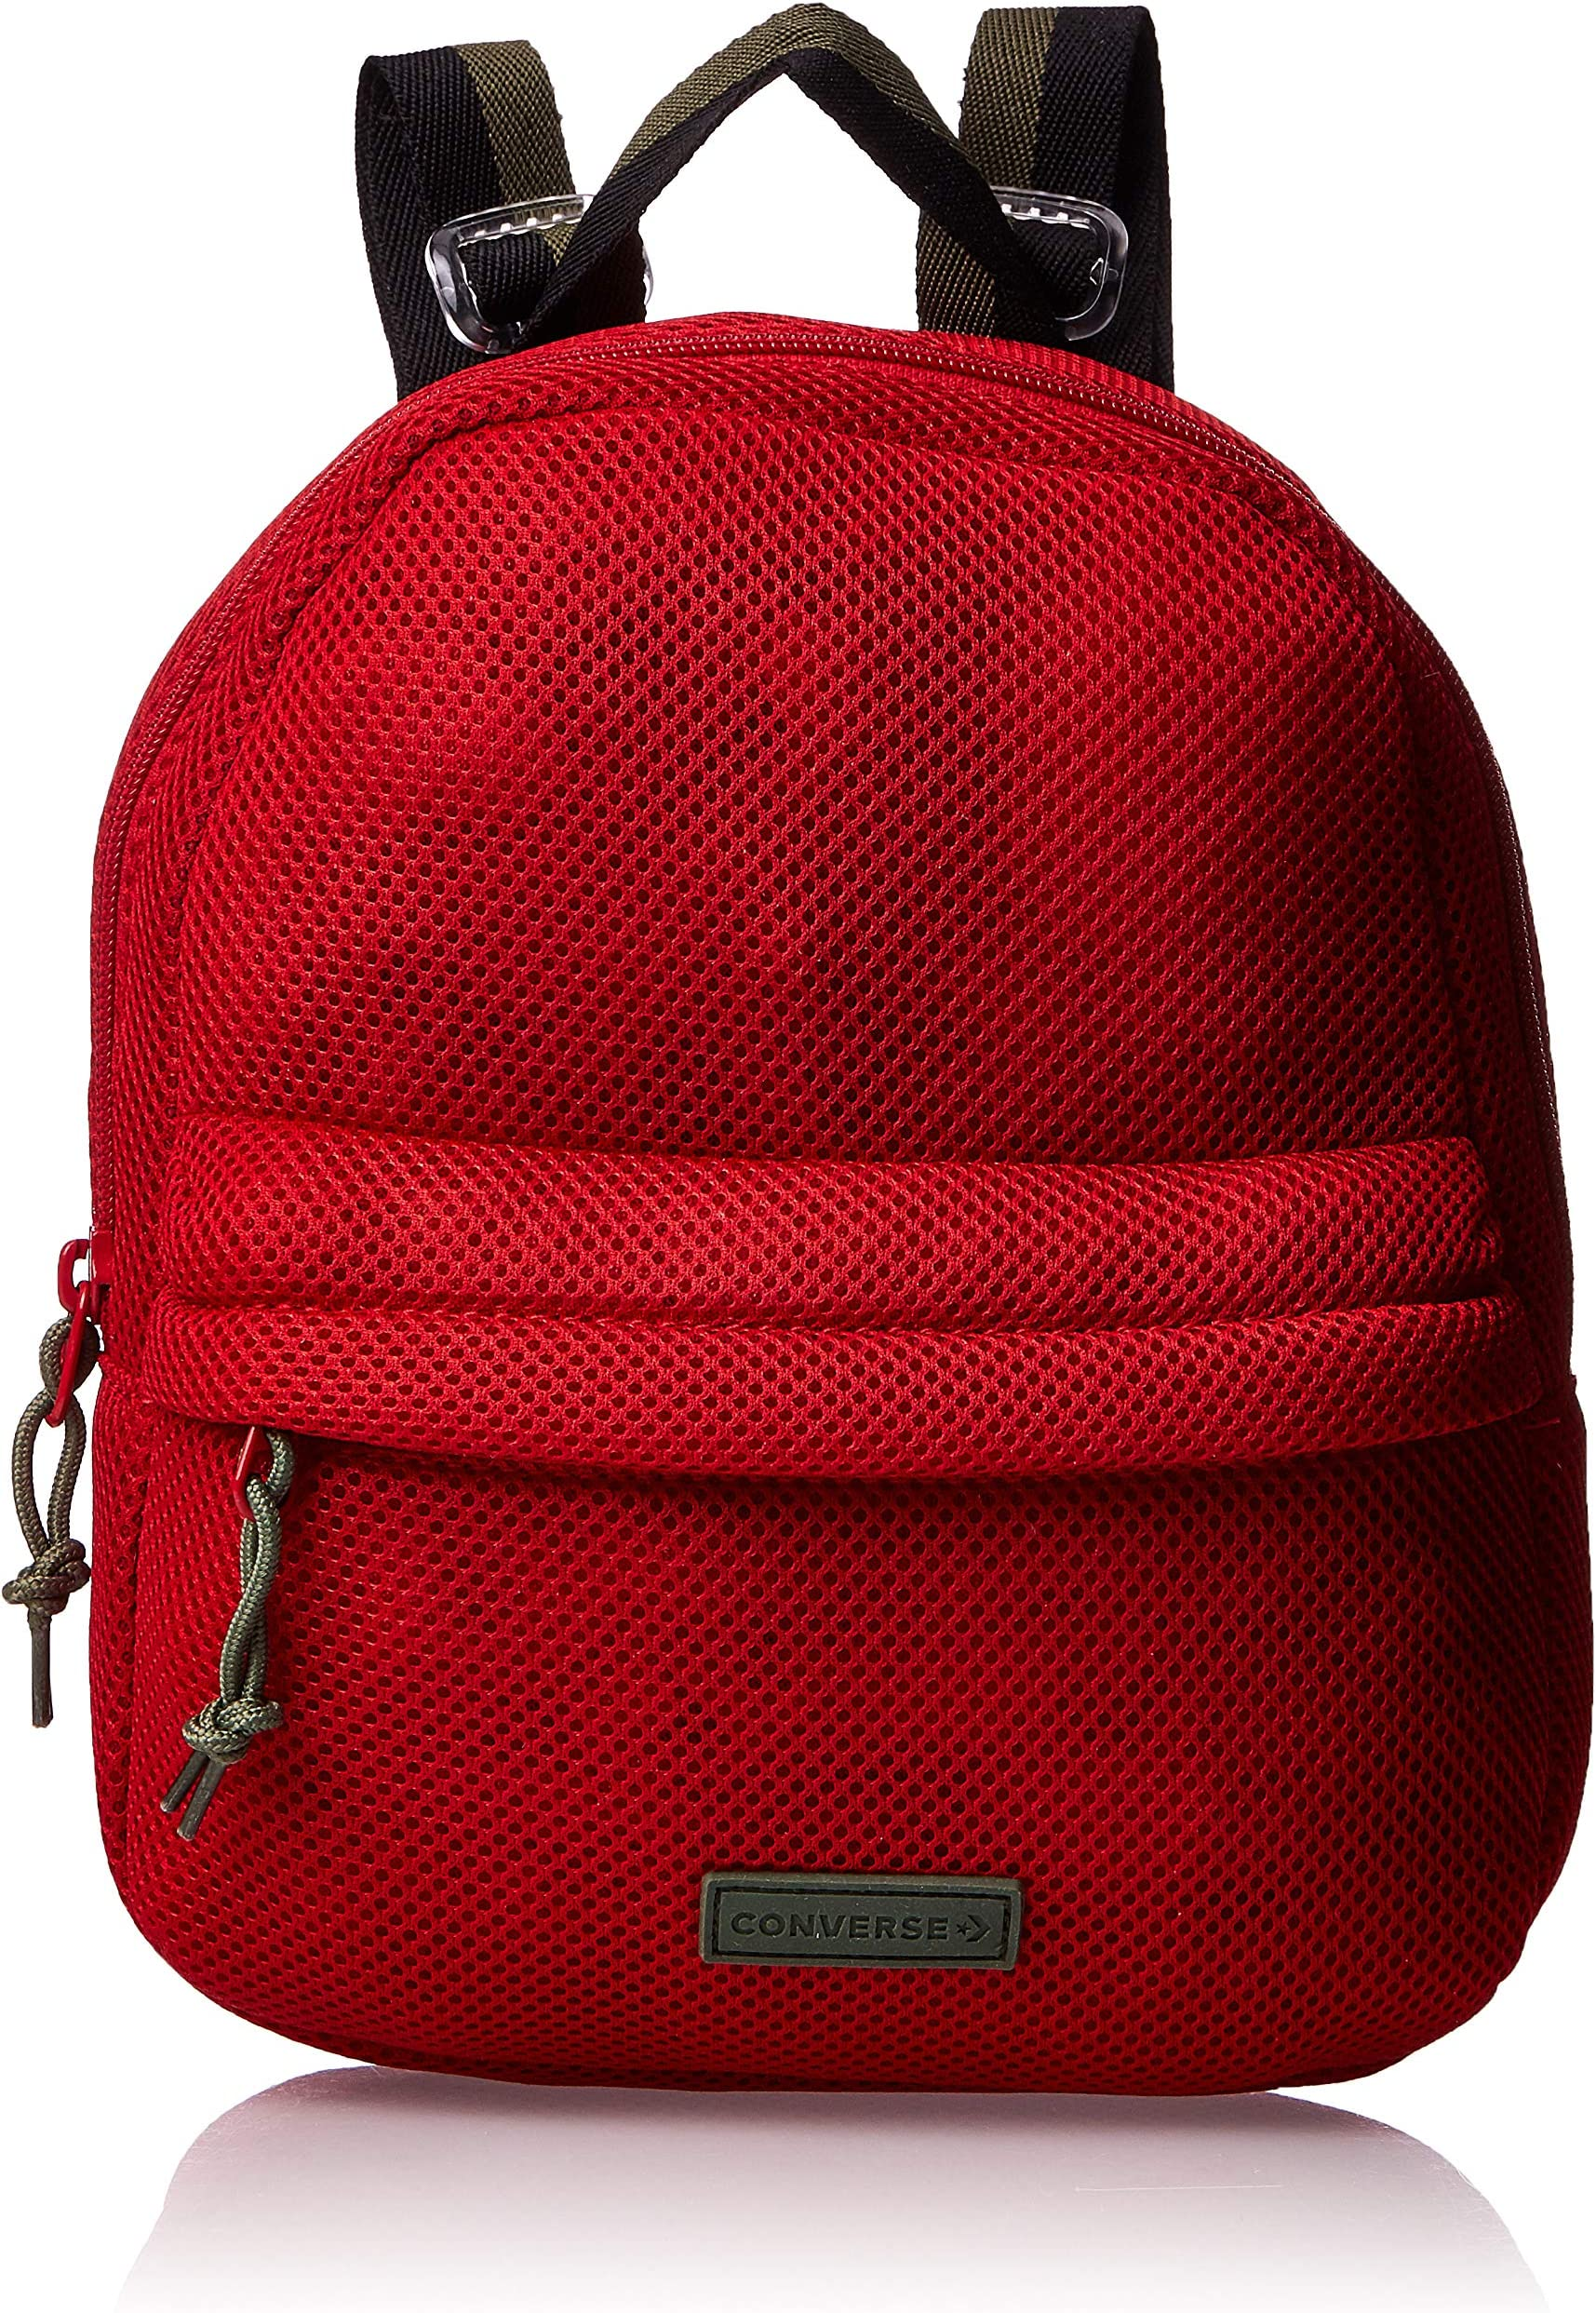 converse backpack price